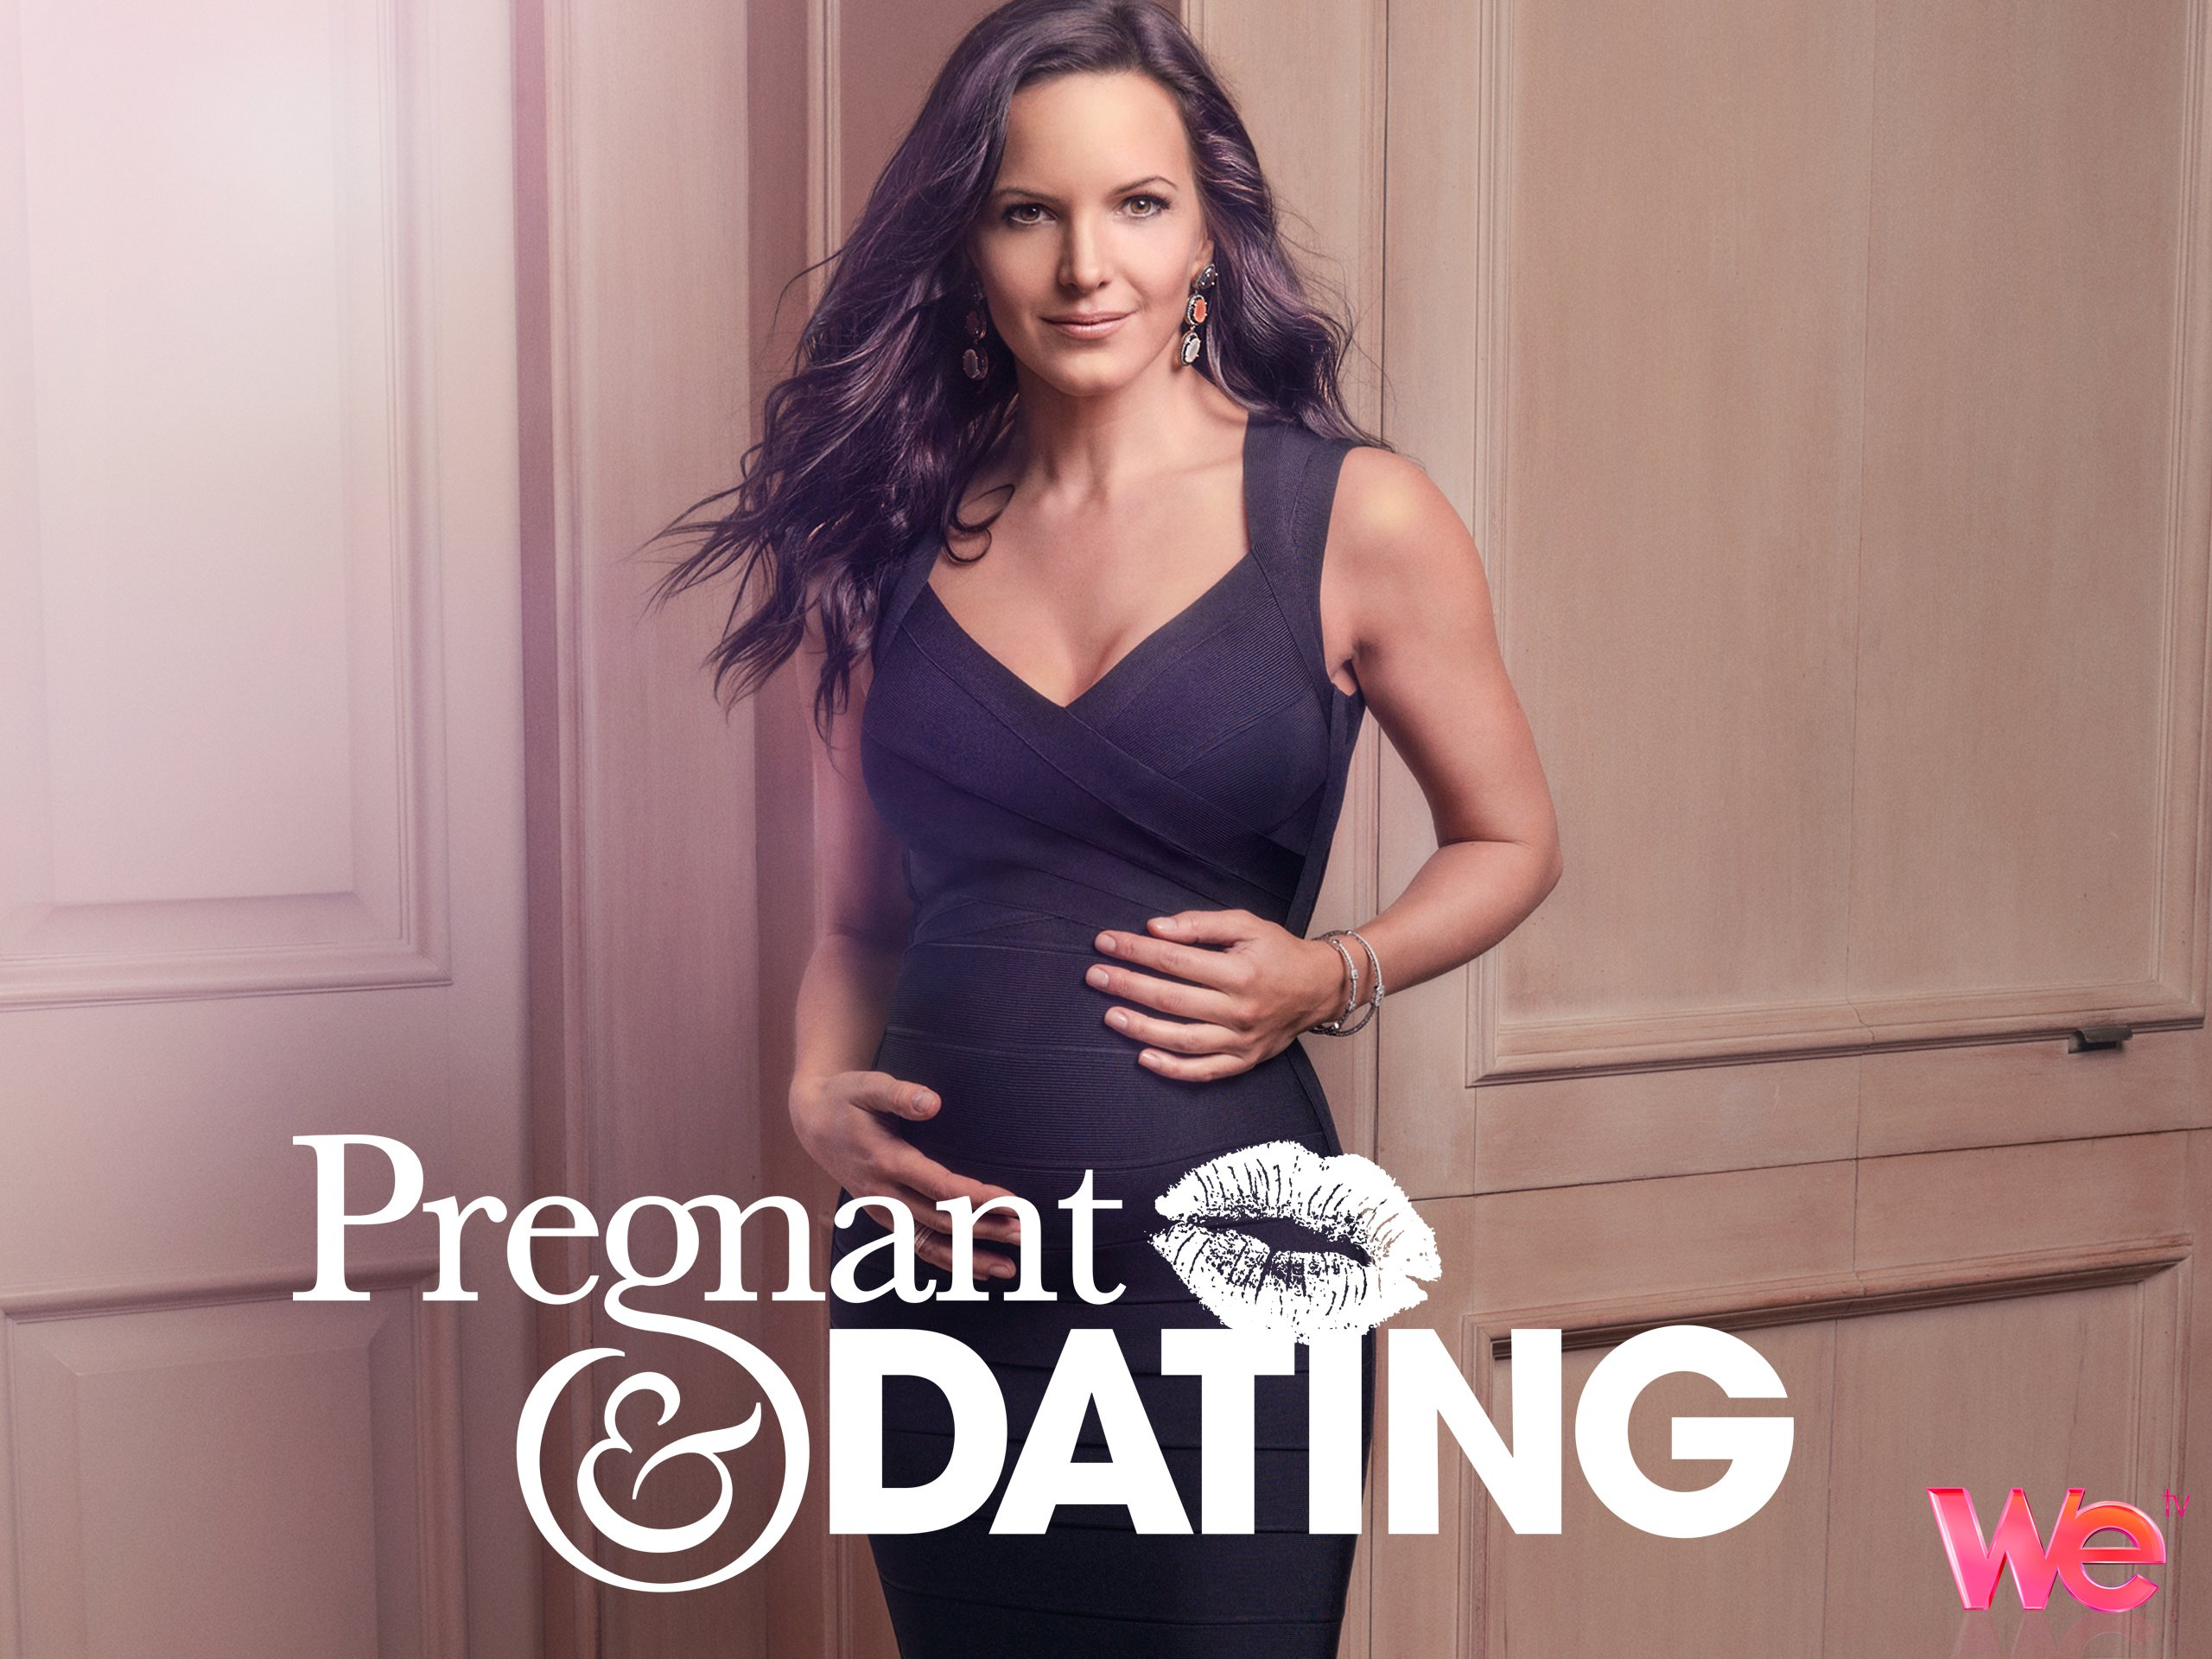 pregnant and dating shana age